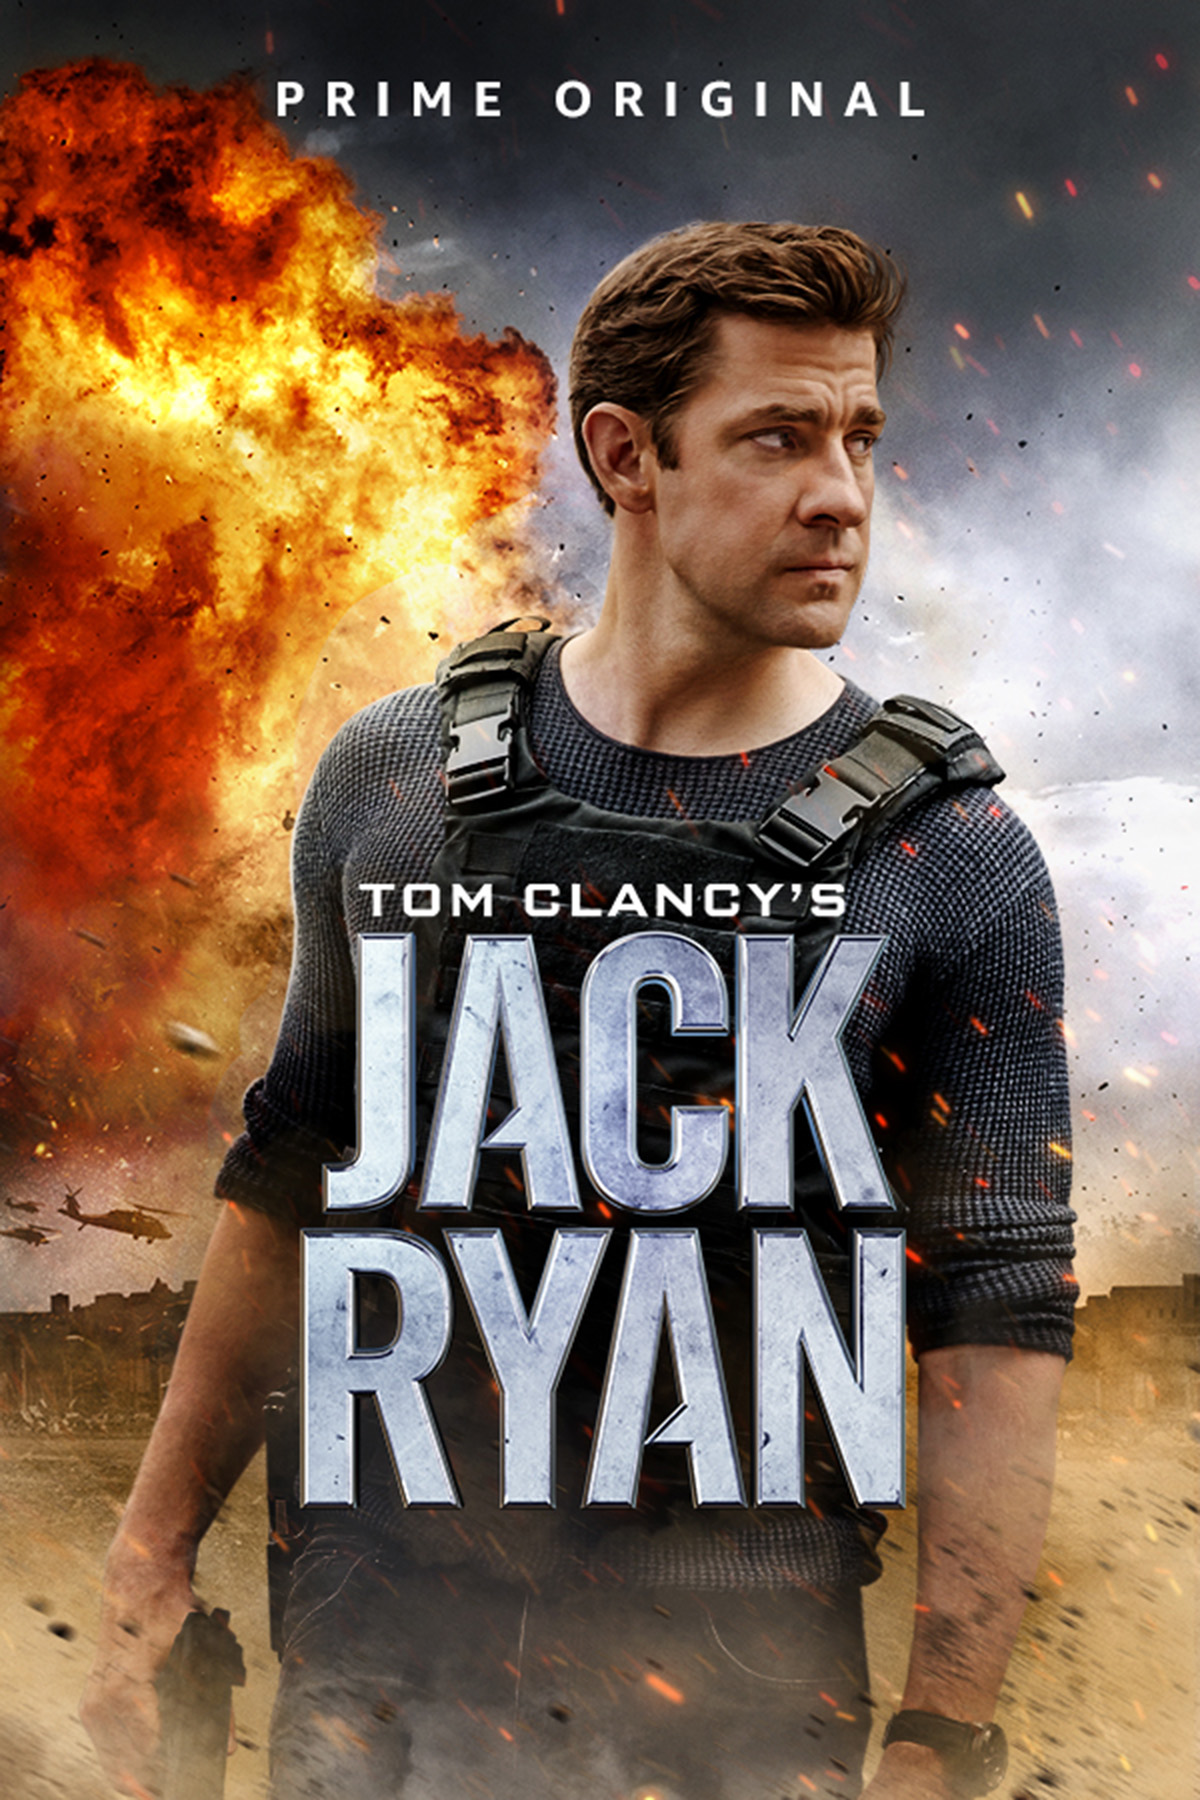 Jack Ryan Trailer & Plakat